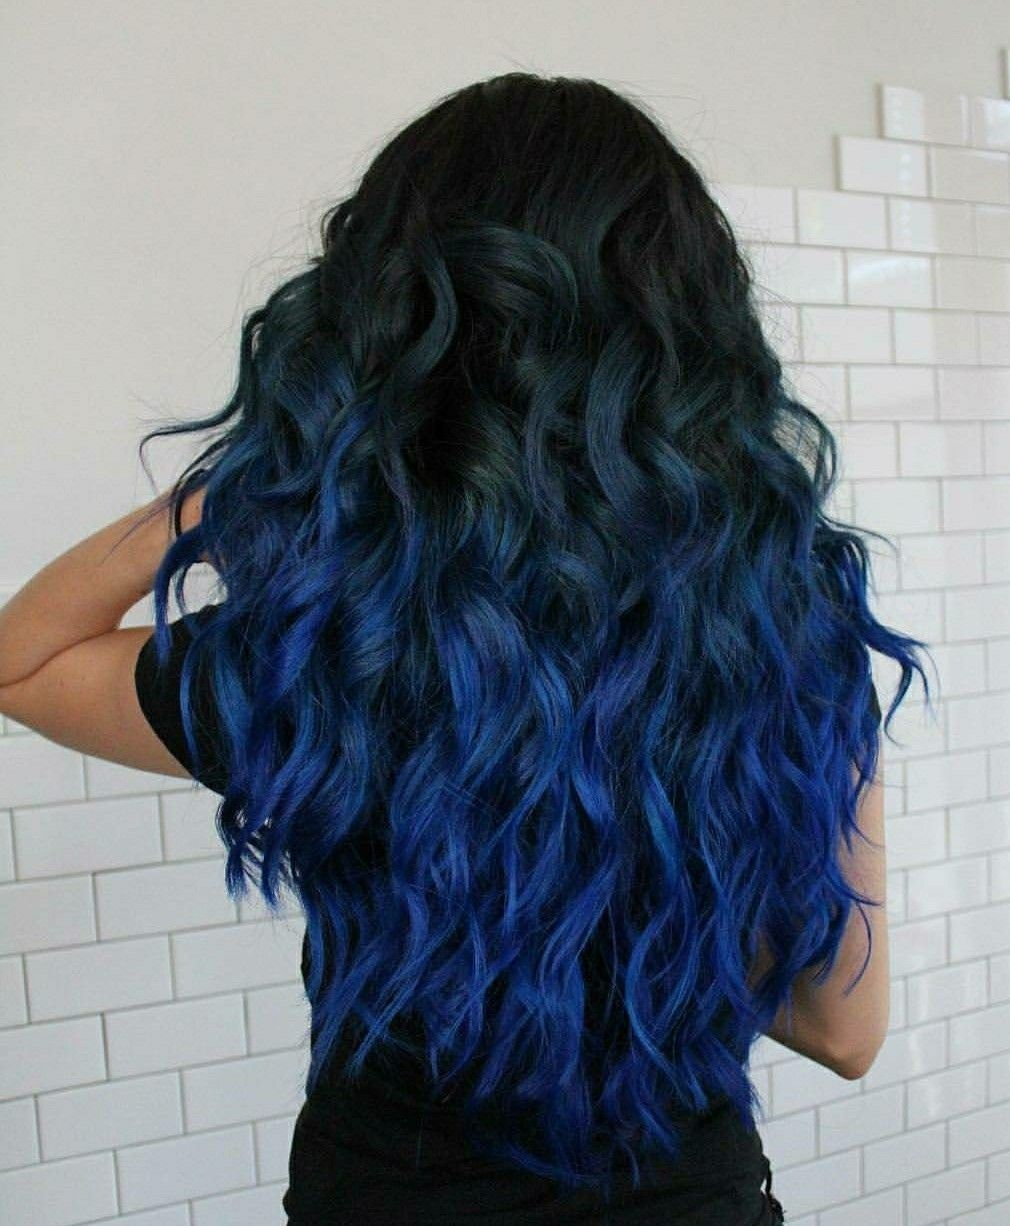 Hairdare Beauty Hairstyles Womenshair Best Ombre Hair Hair